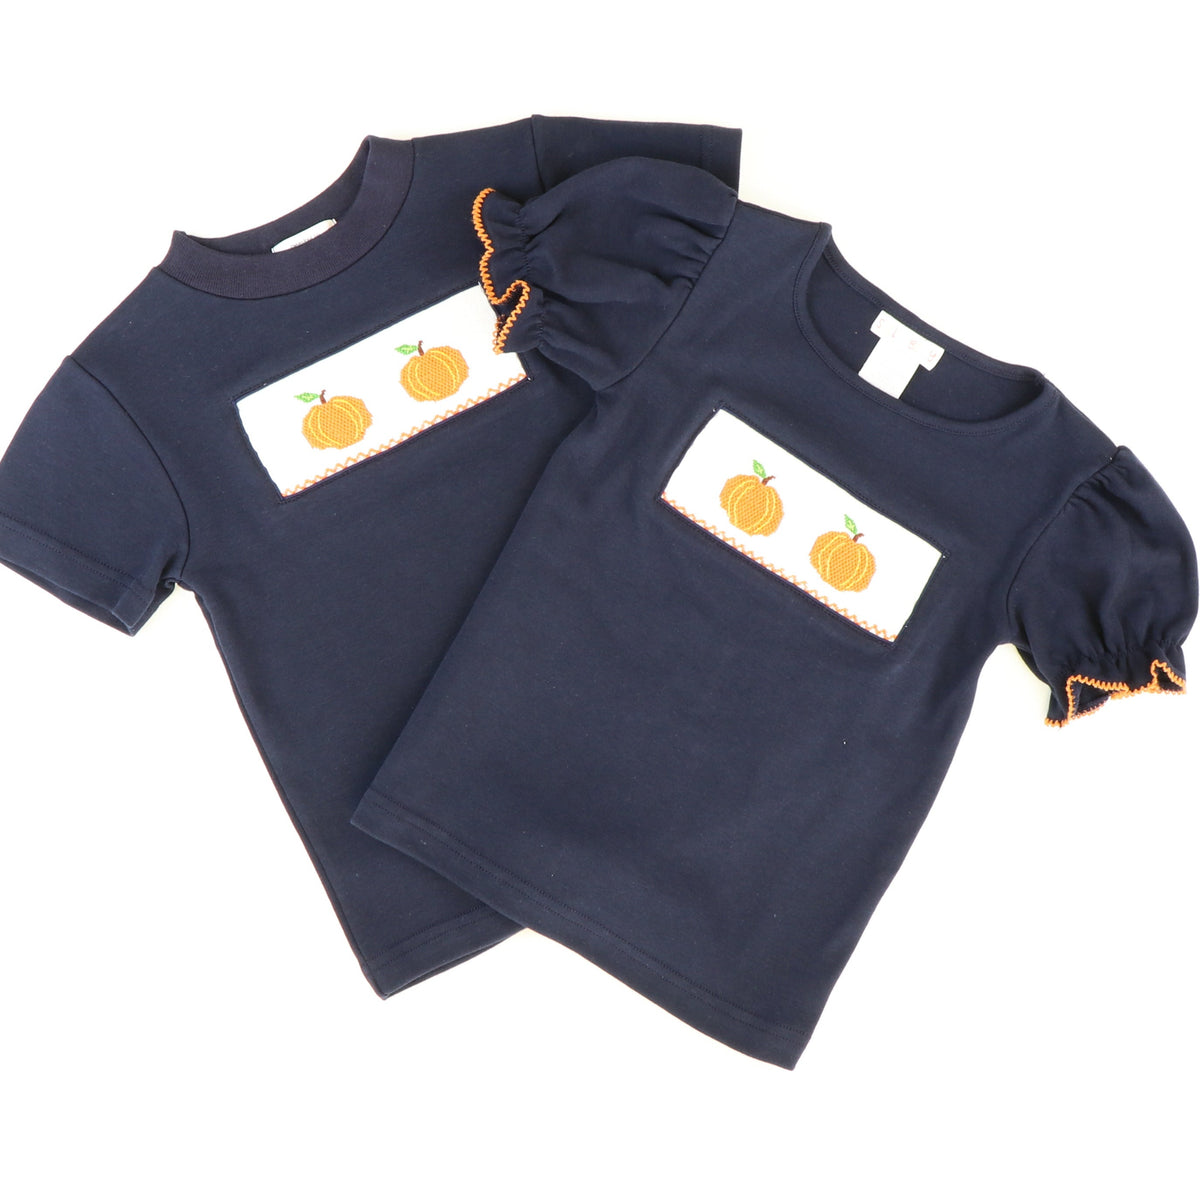 Smocked Pumpkins T-Shirt - Navy Blue